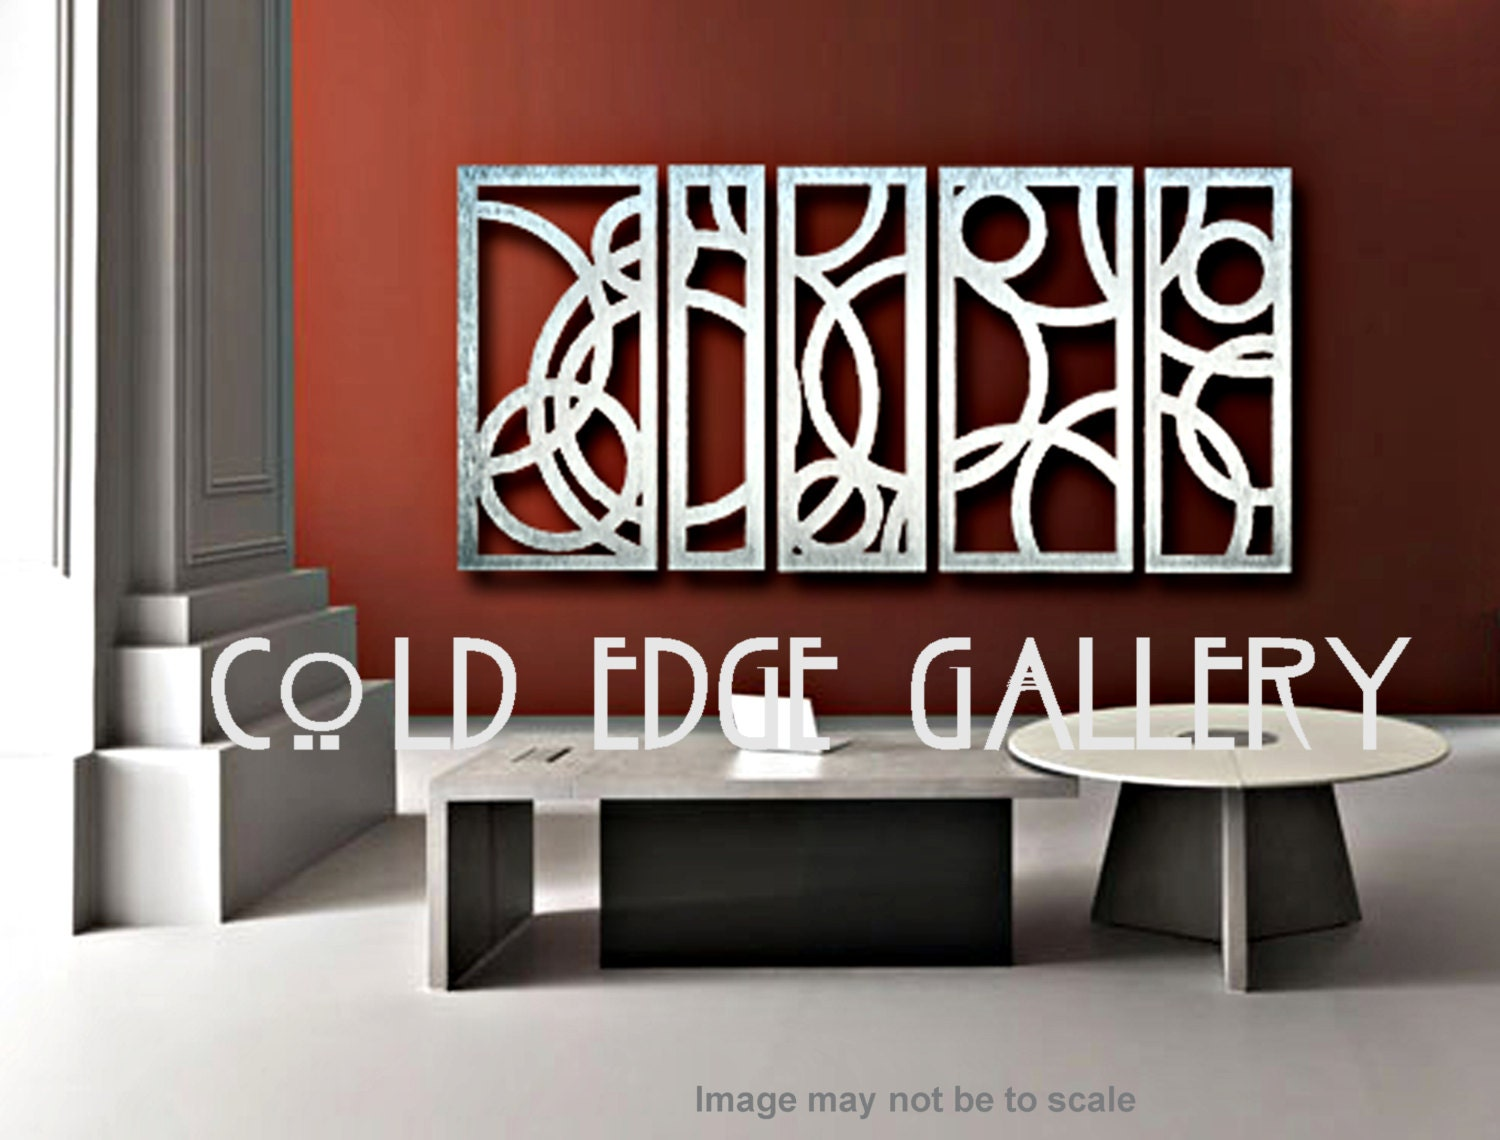 Extra Large Art Metal Wall Art Art Decor By Coldedgegallery